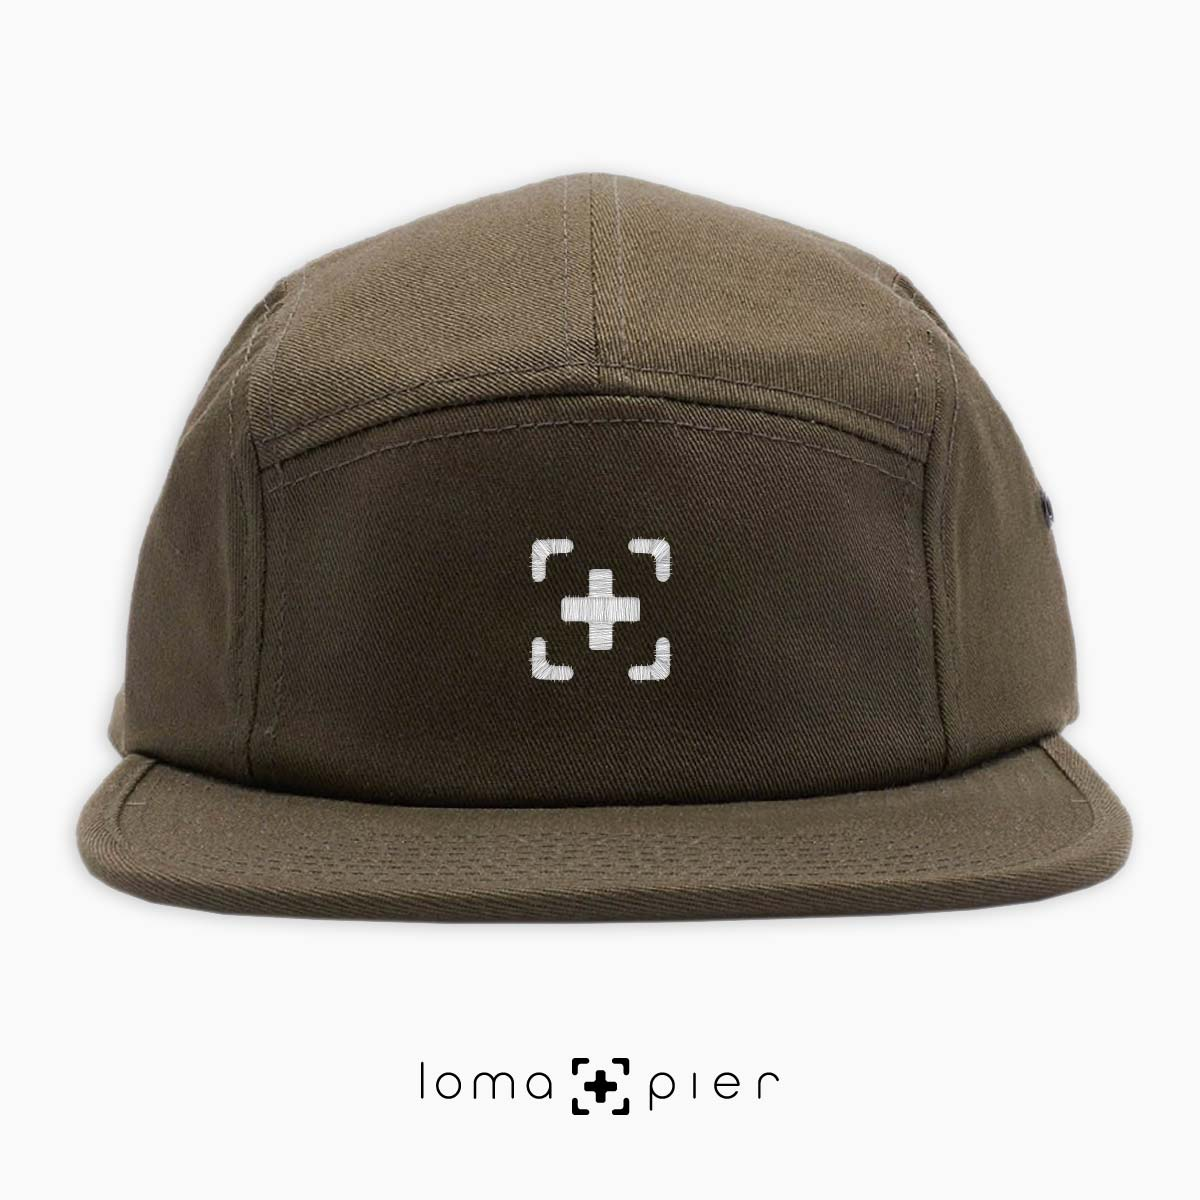 iconic 5-panel hat in green by loma+pier hat store